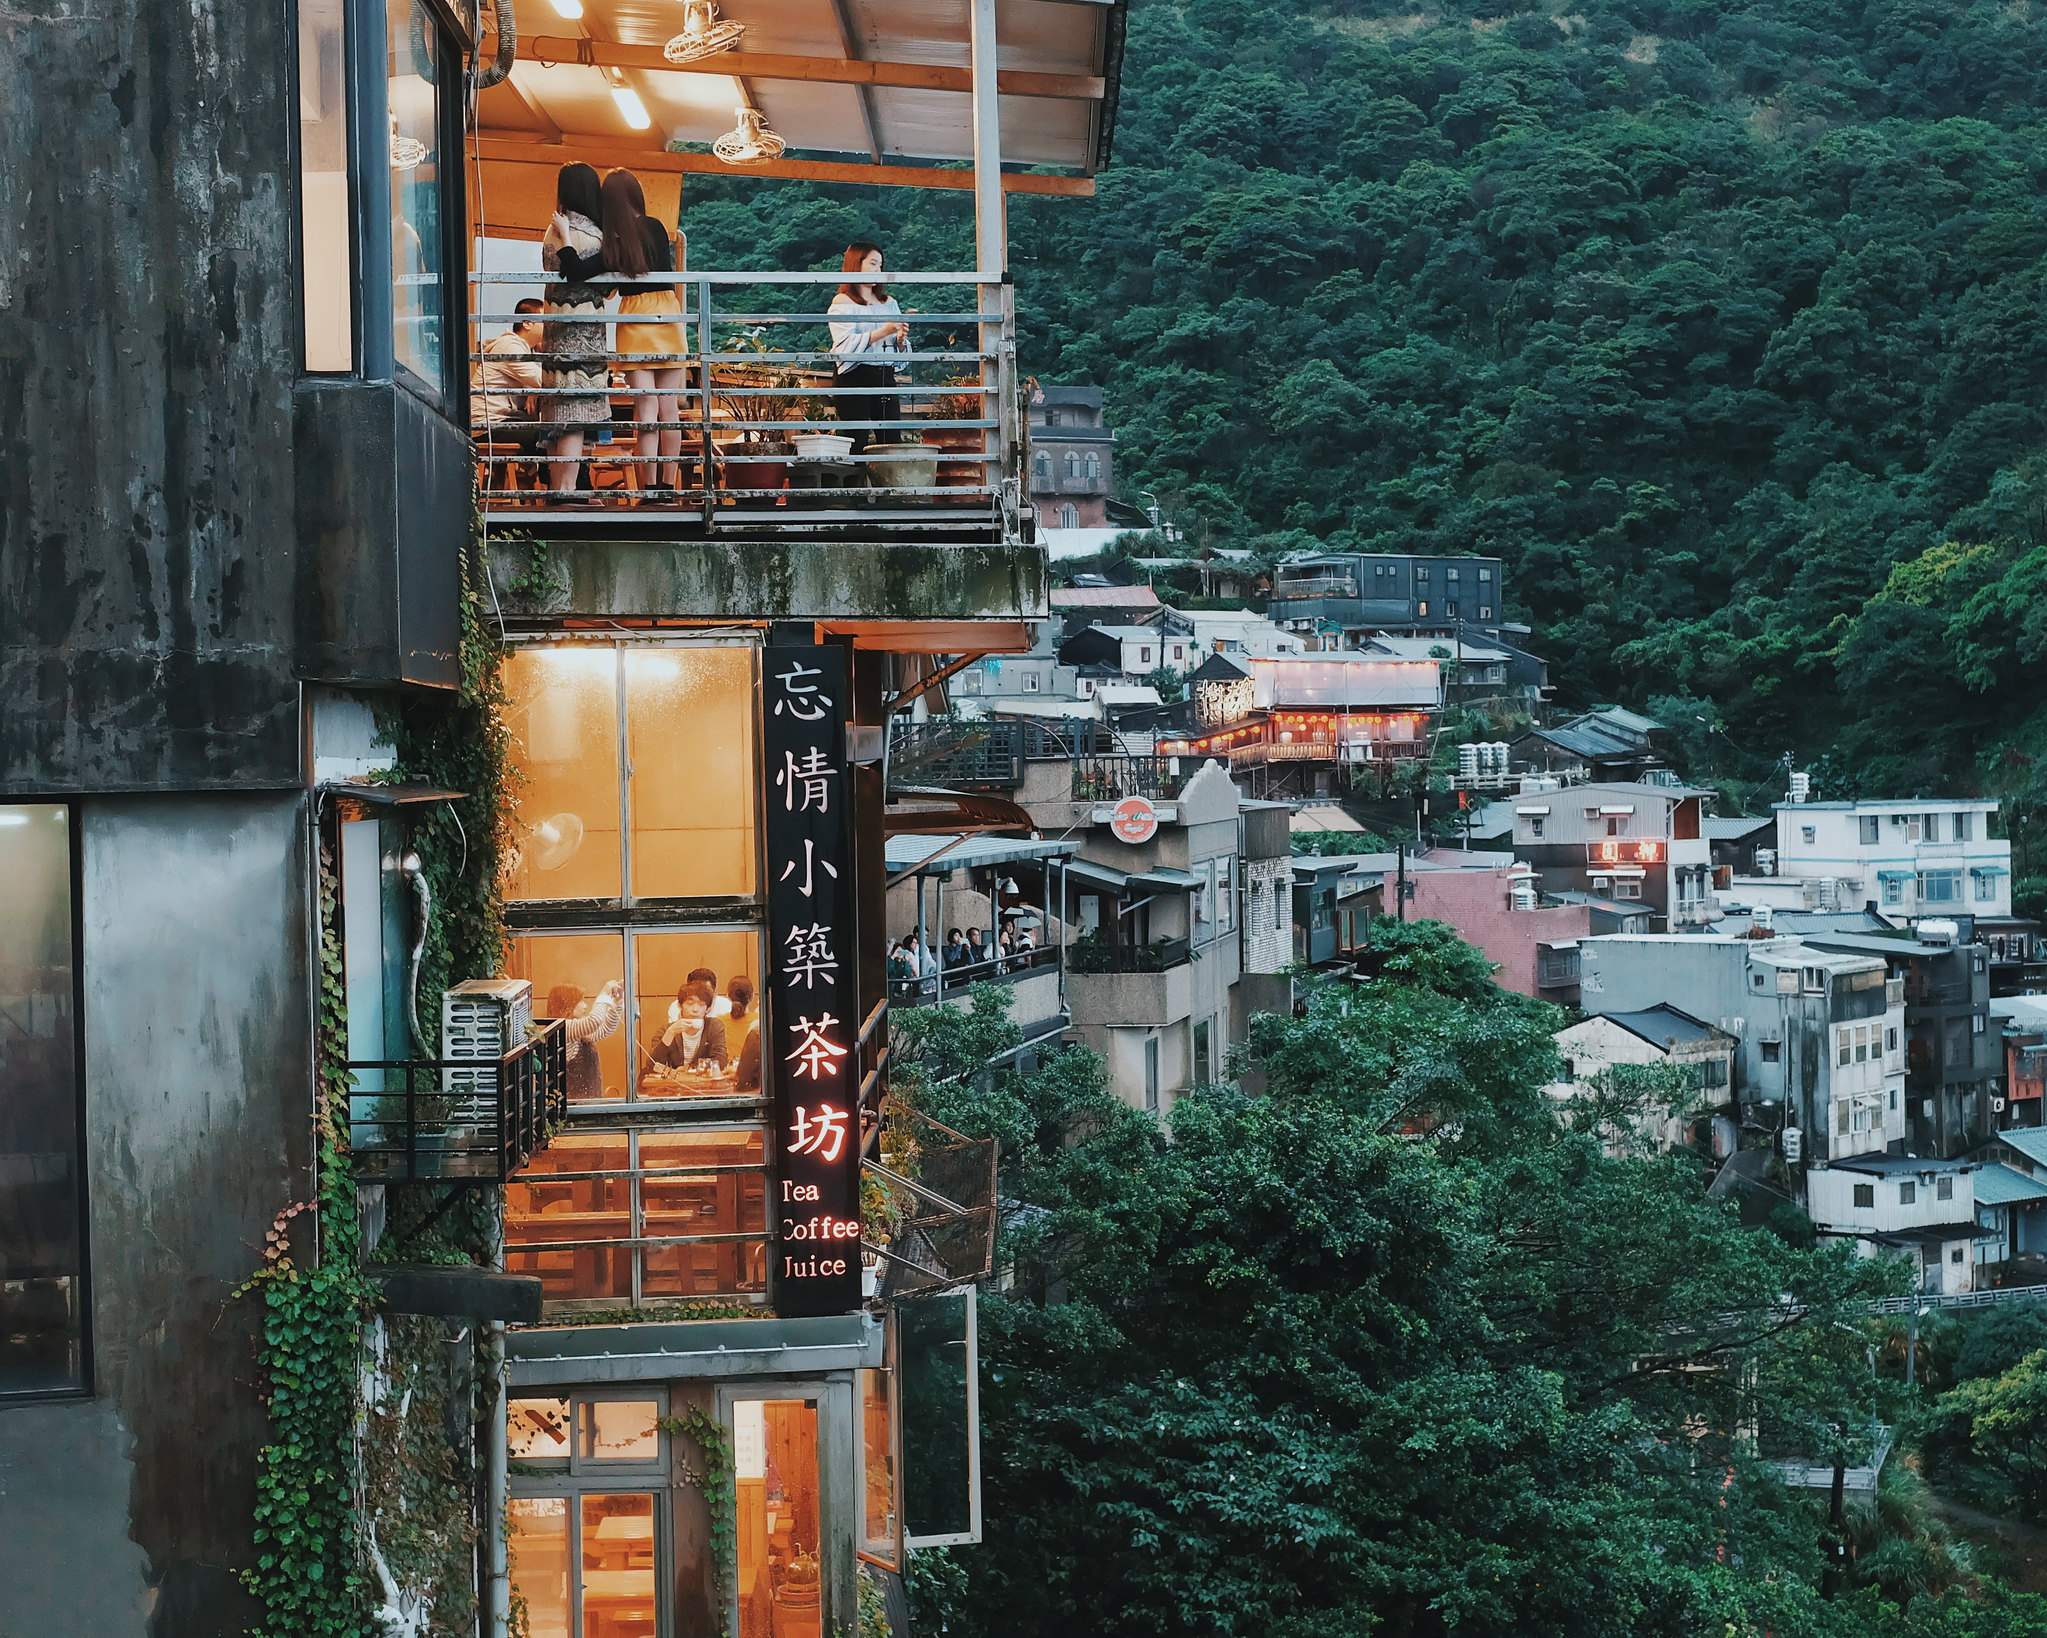 jiufen old street tea house spirited away taiwan